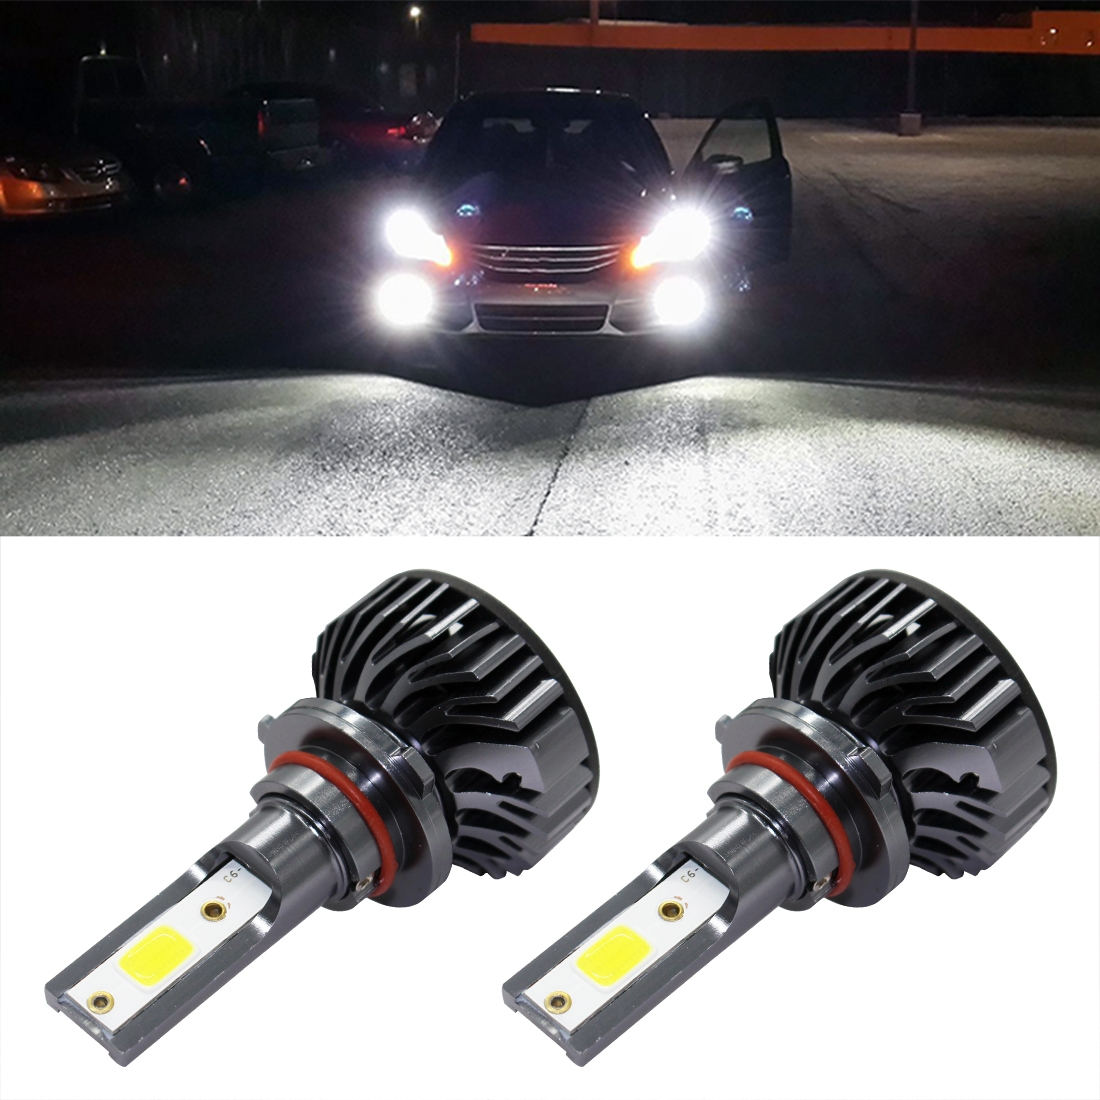 EV8 2 PCS 9005 / HB3 DOB 36W 3000LM 6500K LED Headlight Bulbs High Beam Conversion Kit DC 9-32V (Xenon White)